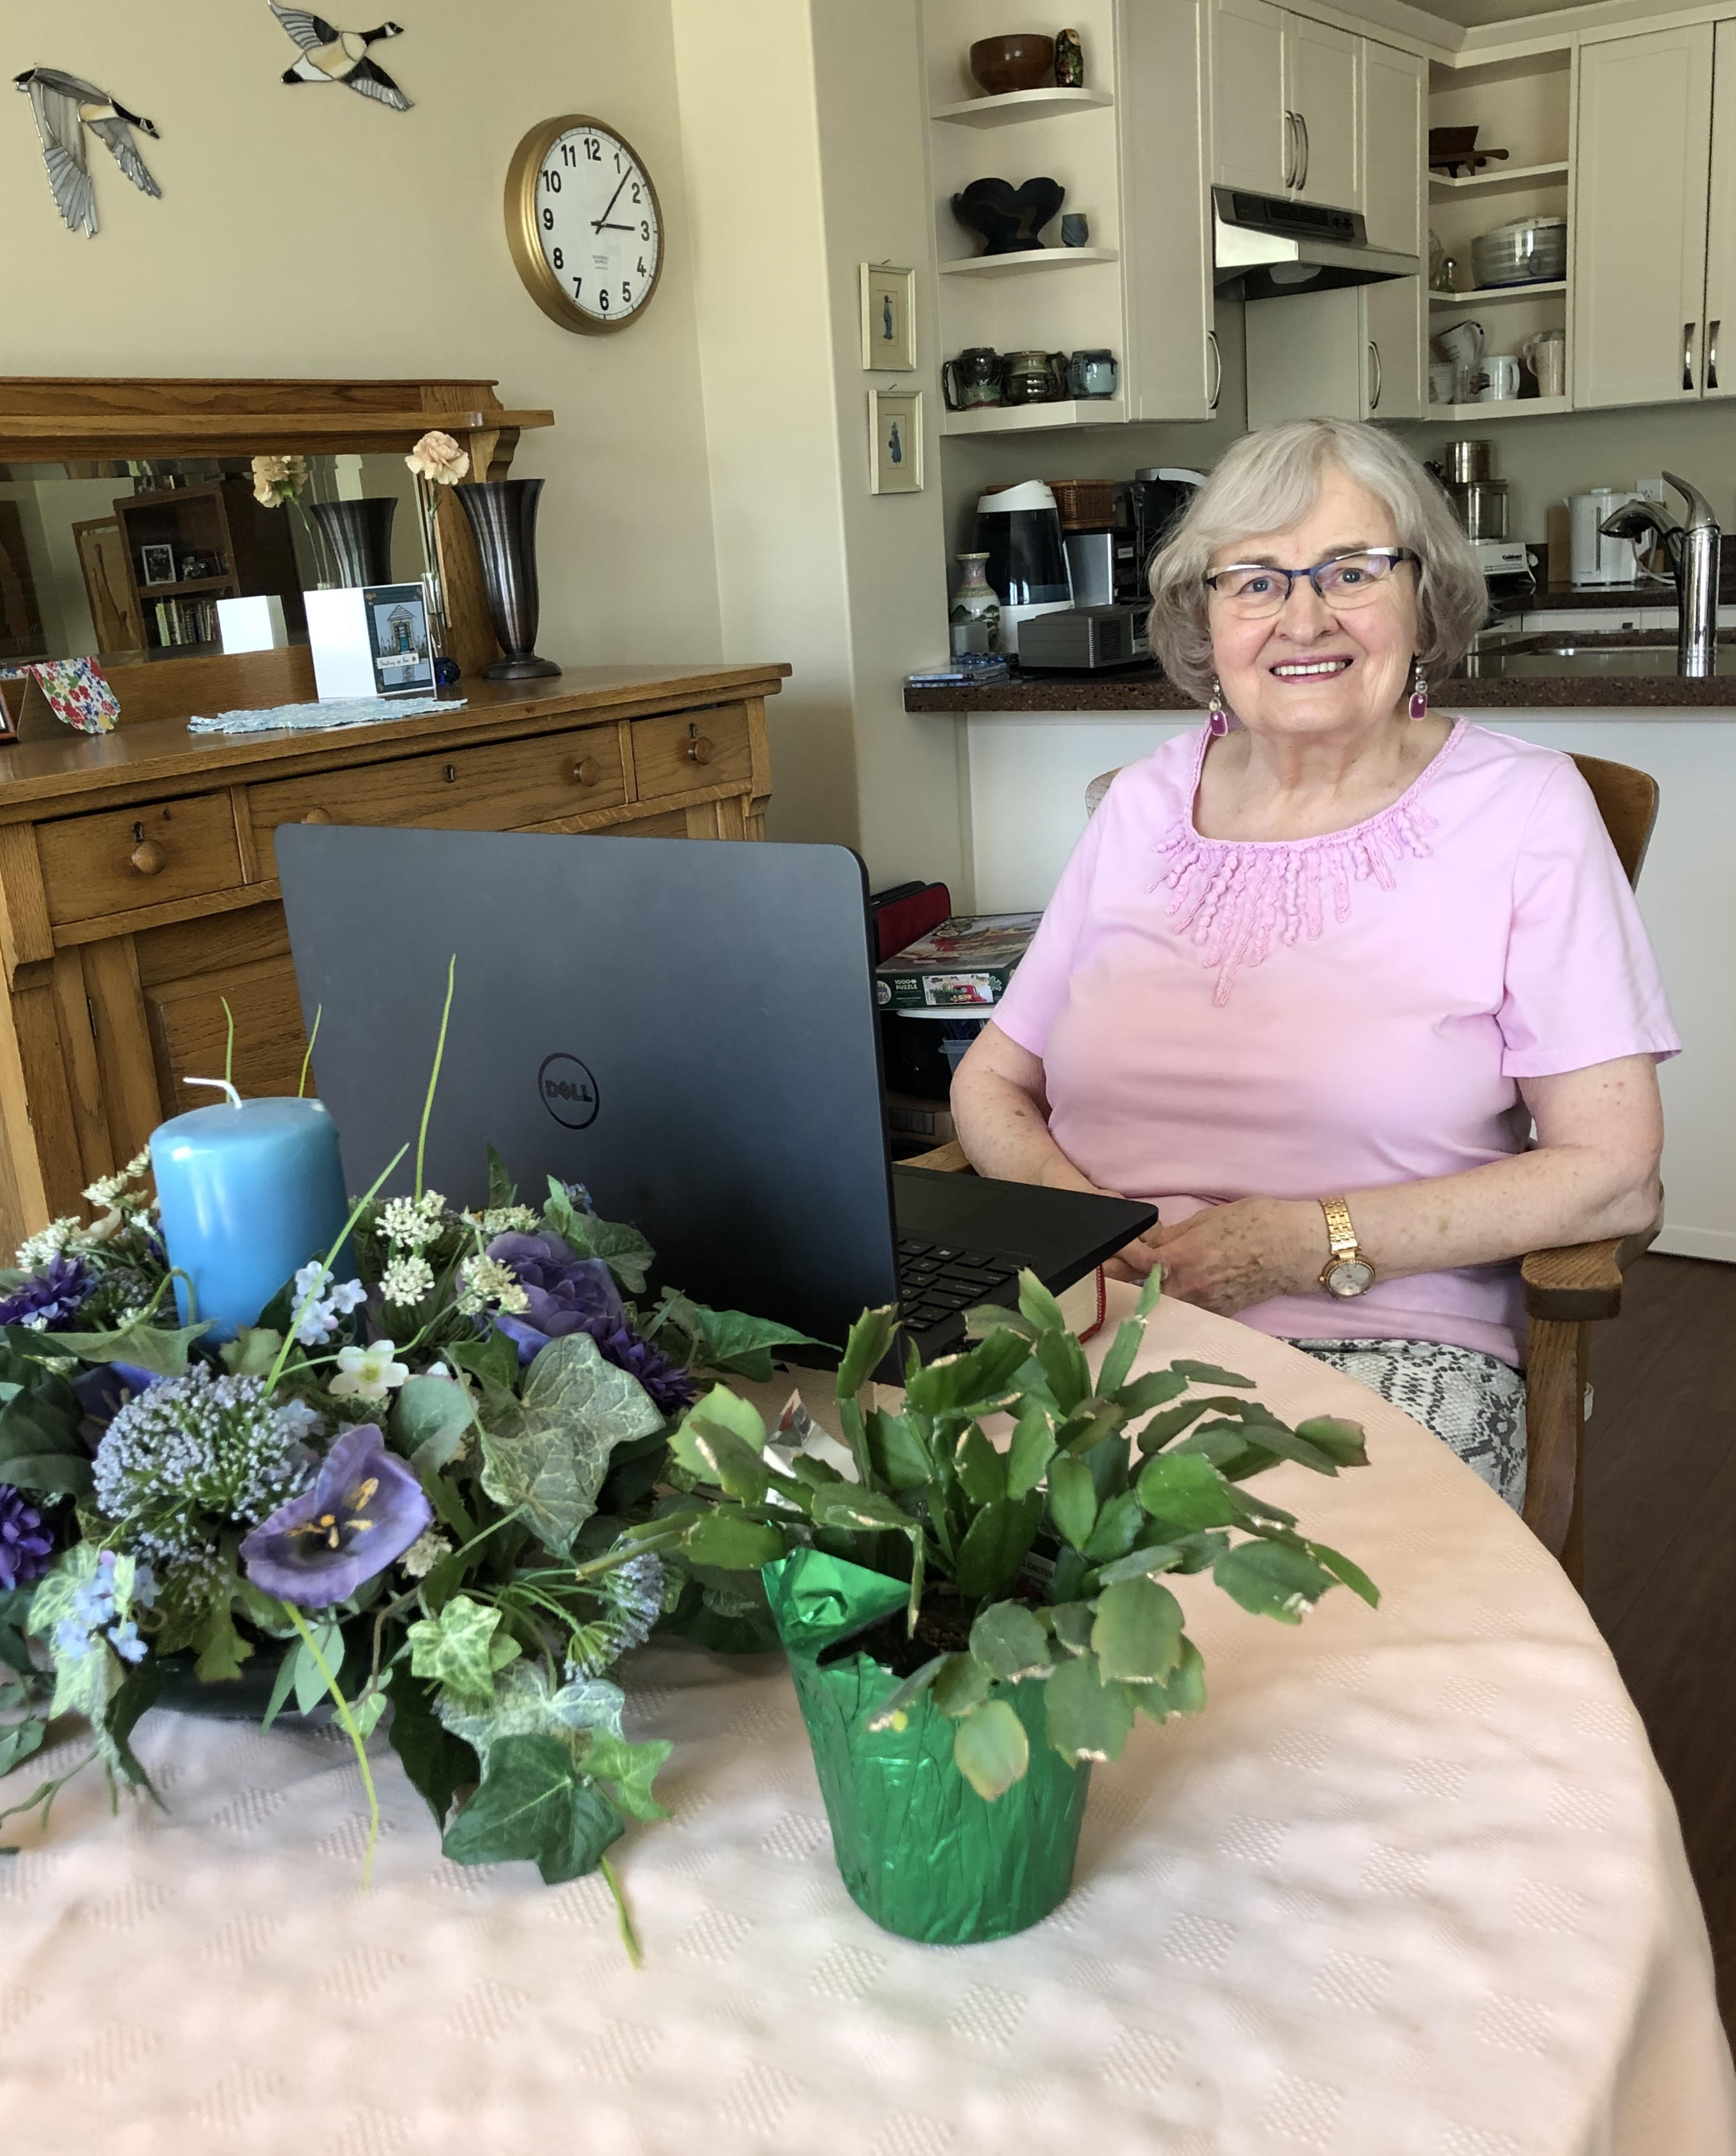 Ruth Nelson stays connected to her friends and family using the latest technology